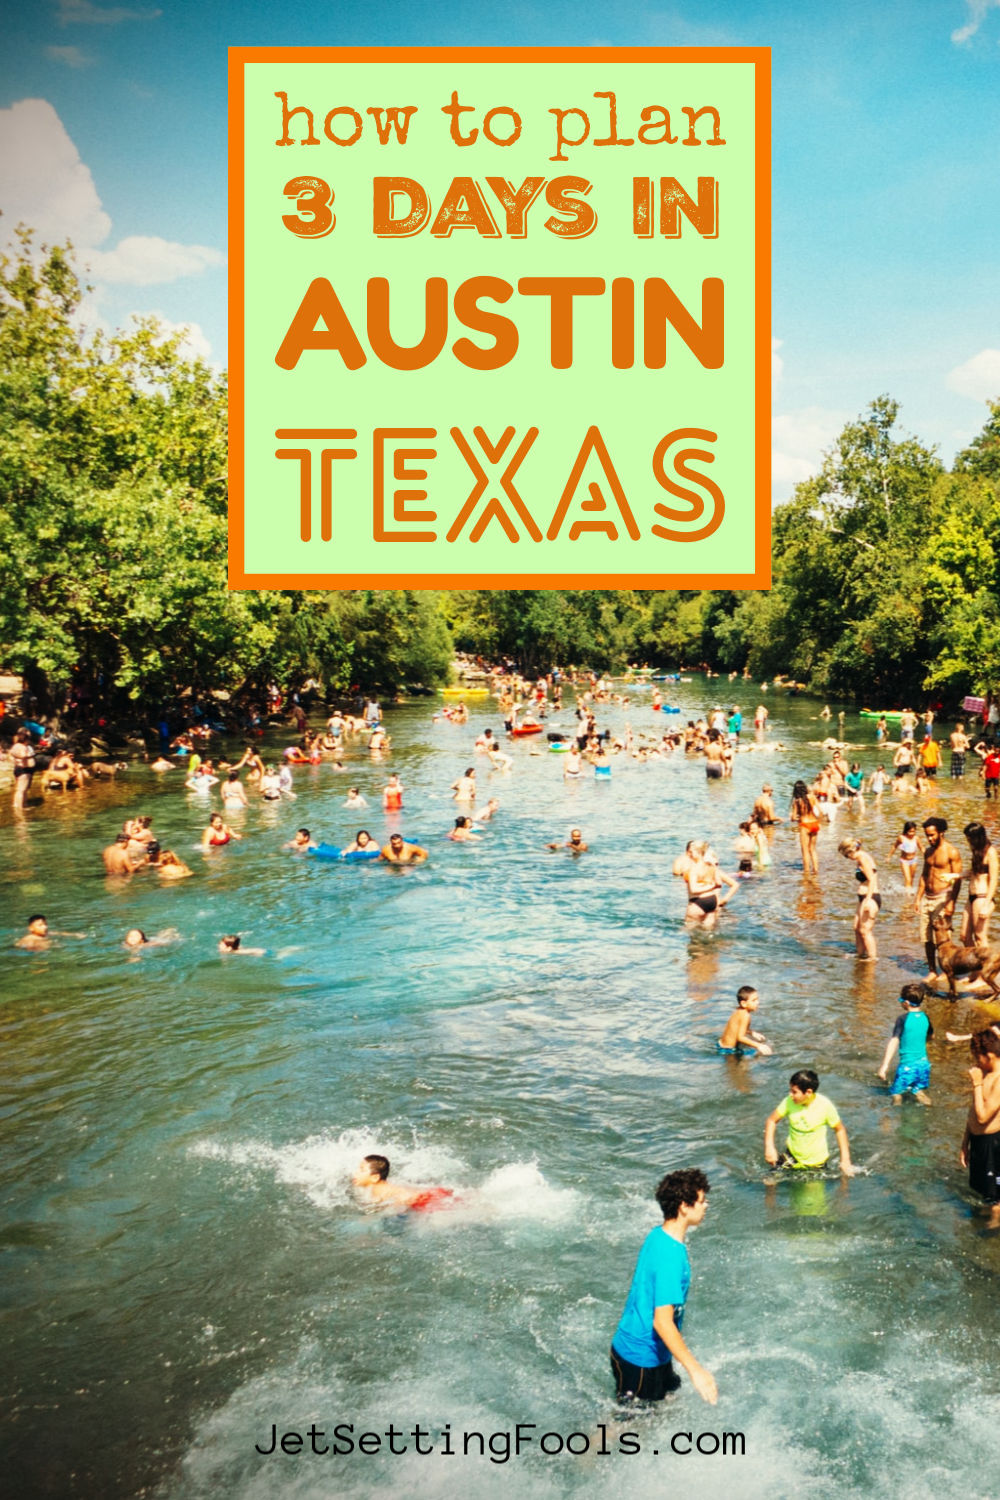 3 Days in Austin, Texas by JetSettingFools.com